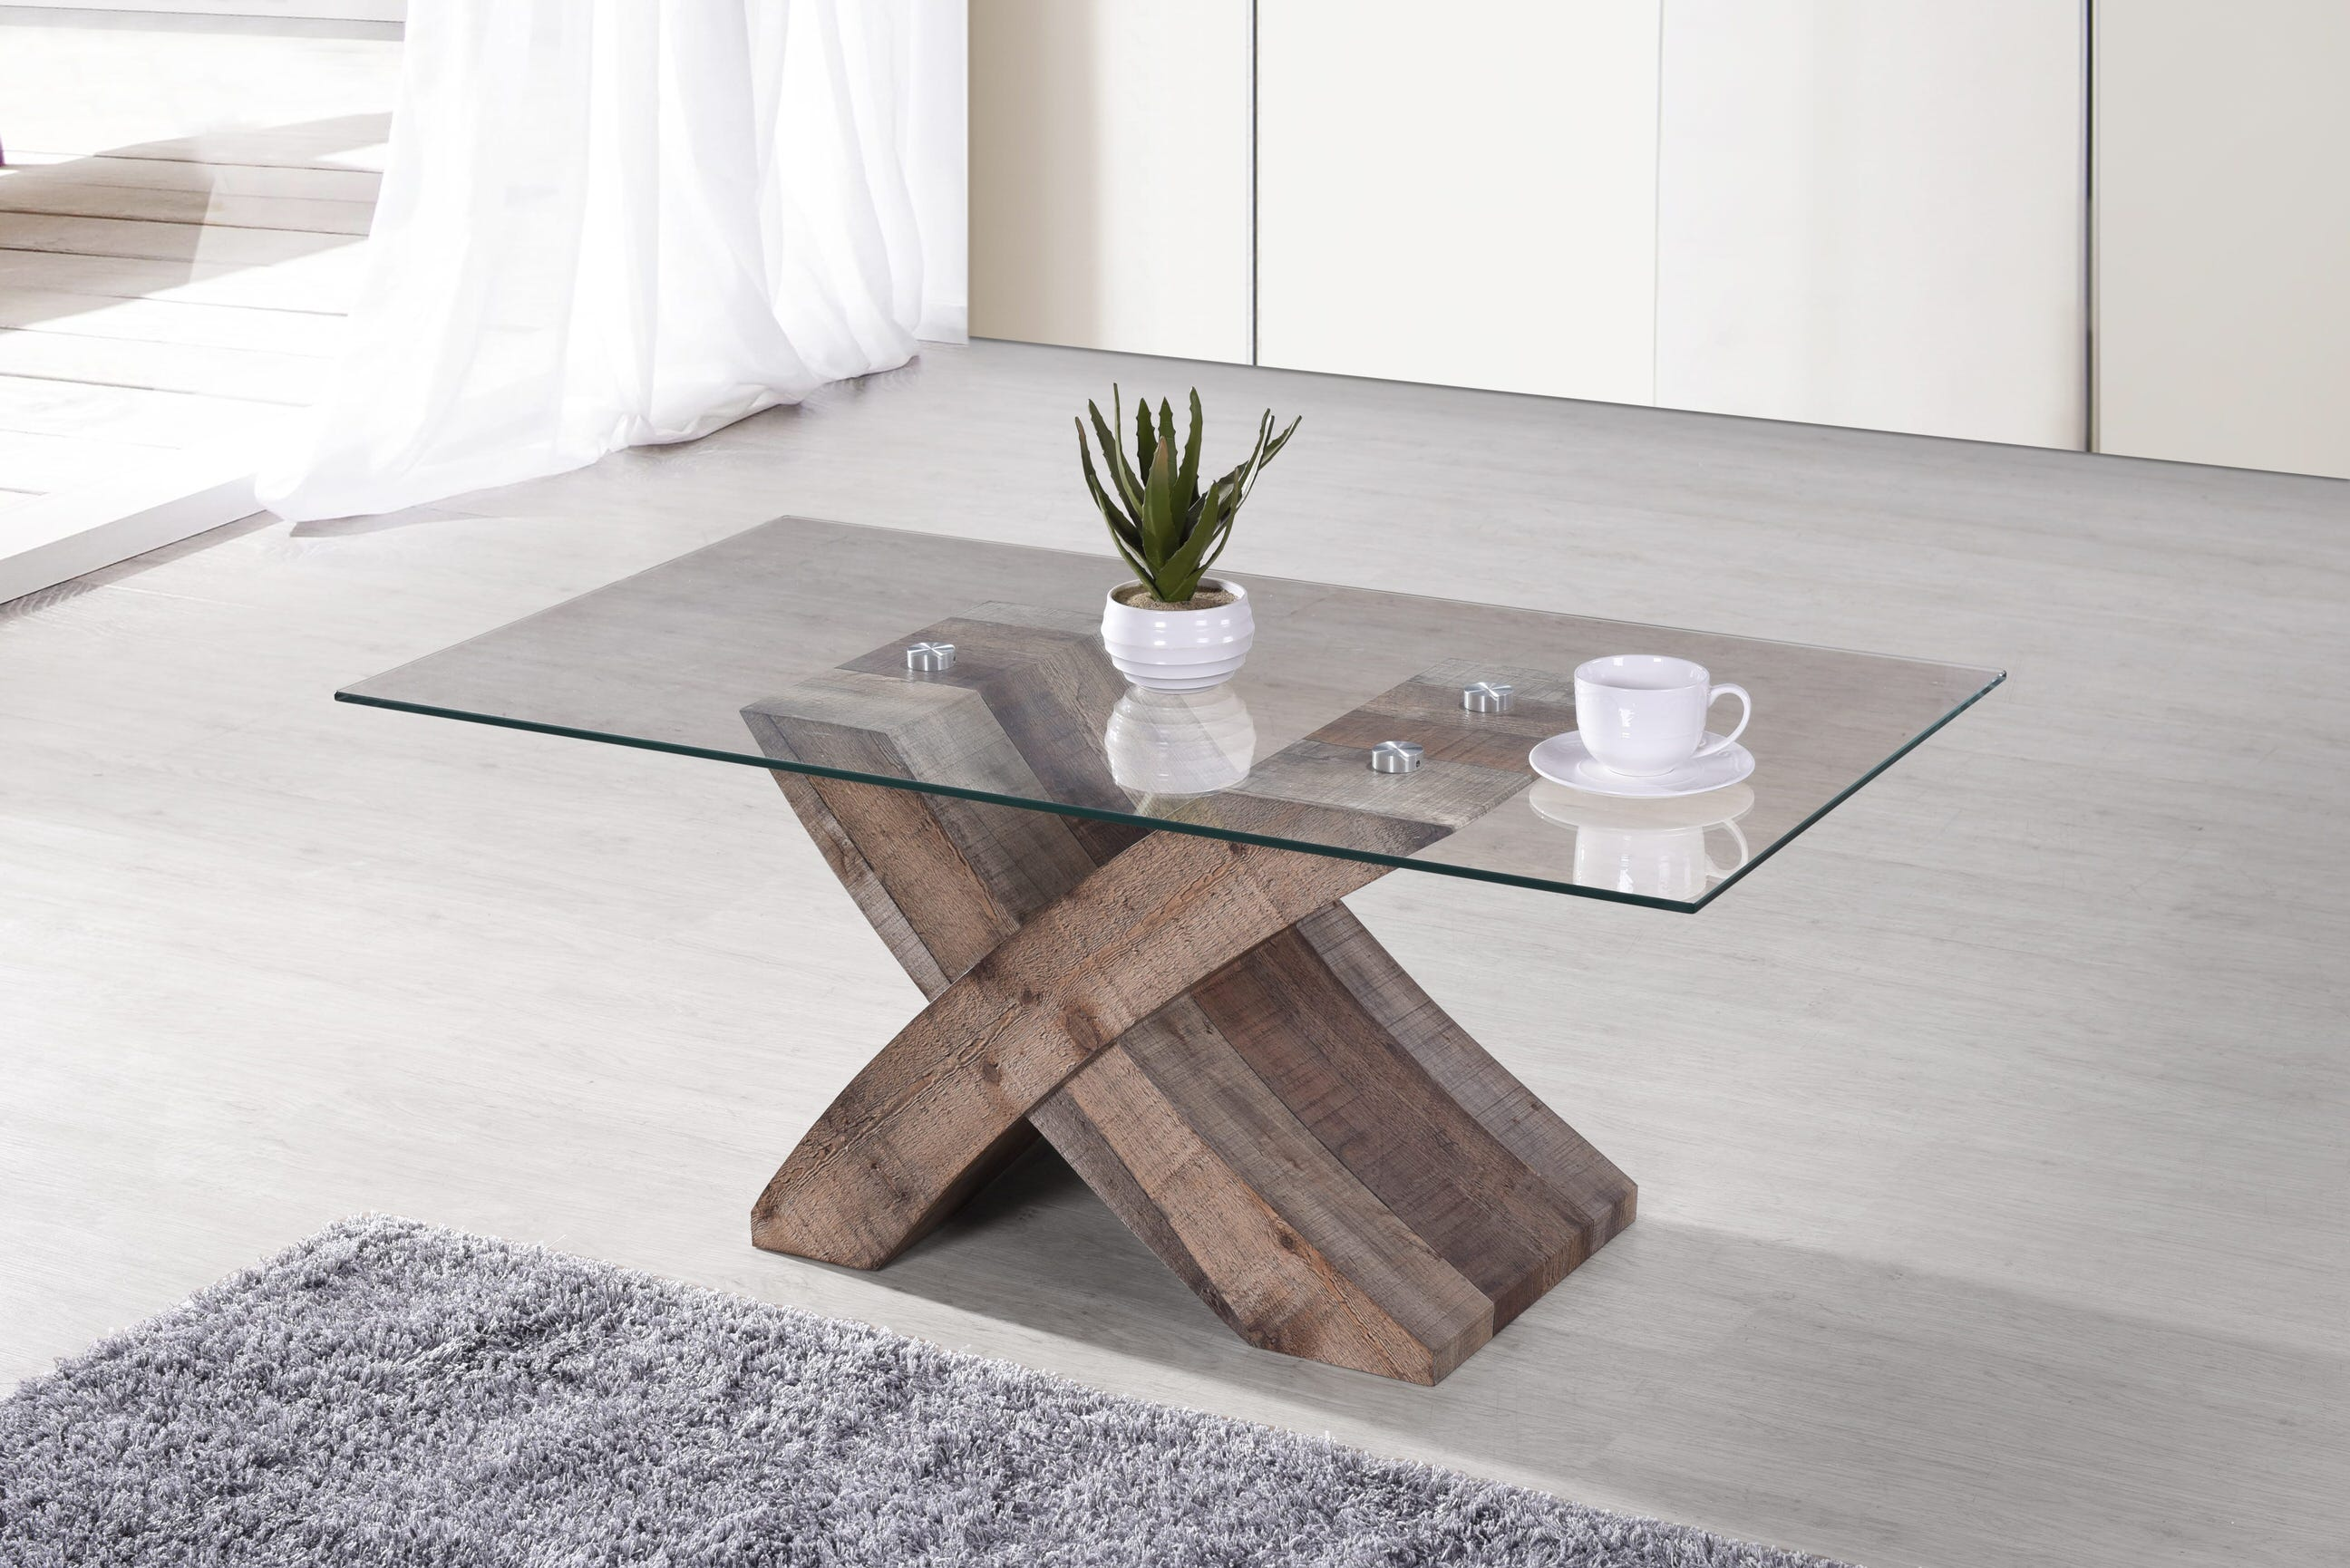 elden rustic brown wood coffee table w tempered glass top by casamode functional furniture